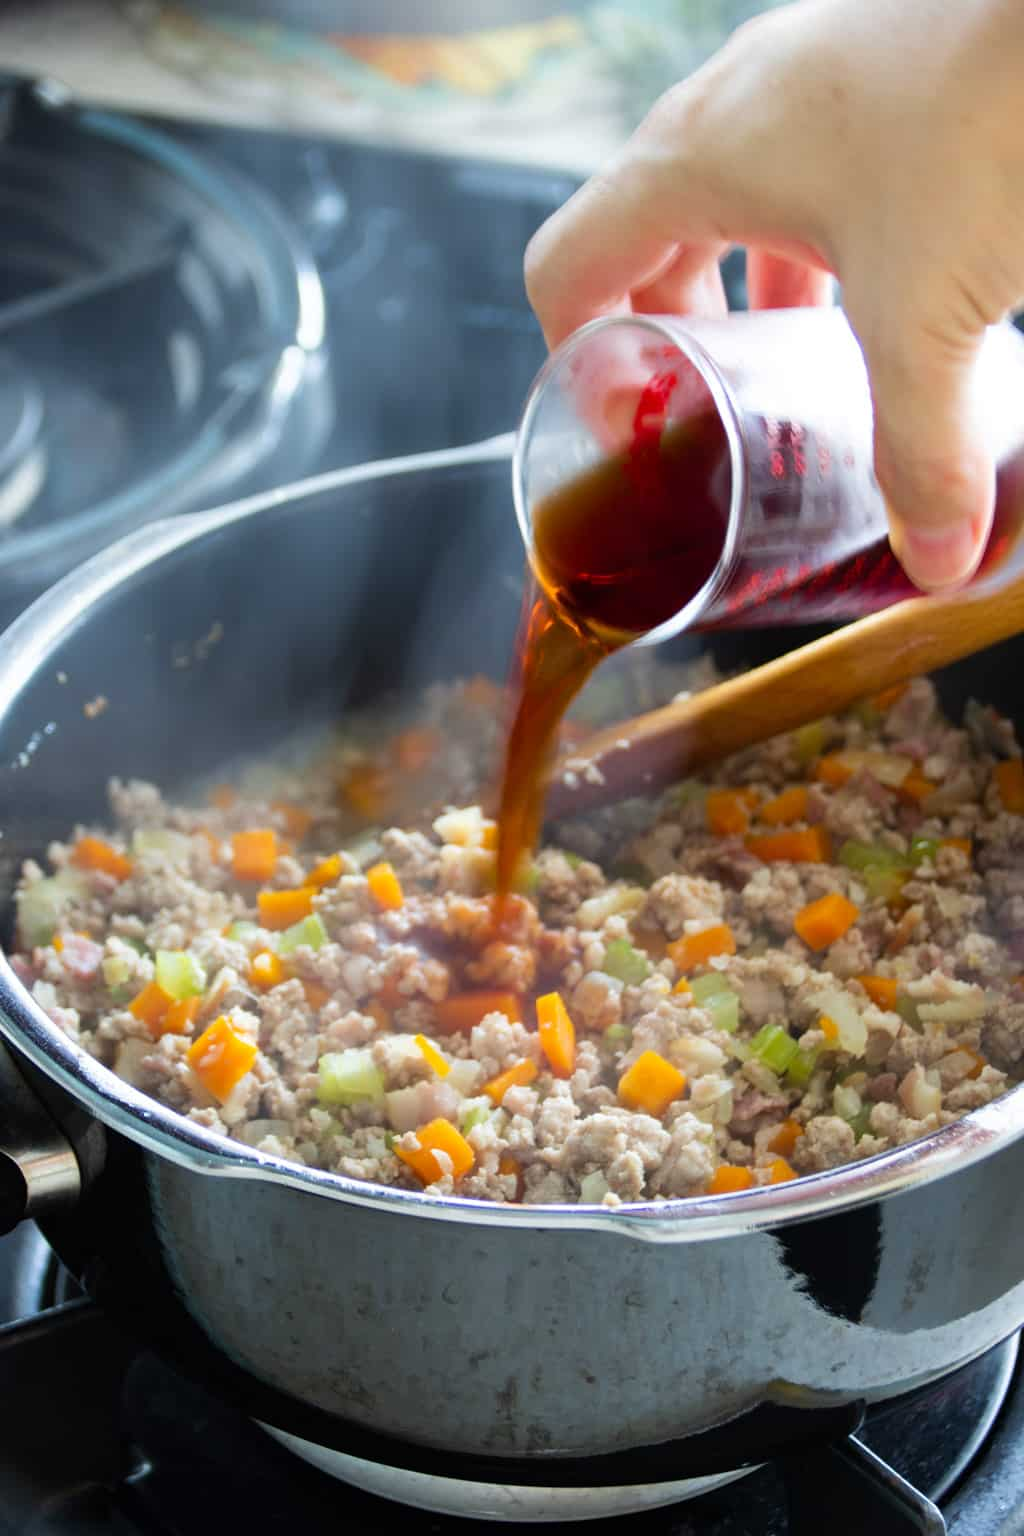 Adding red wine to bolognese sauce